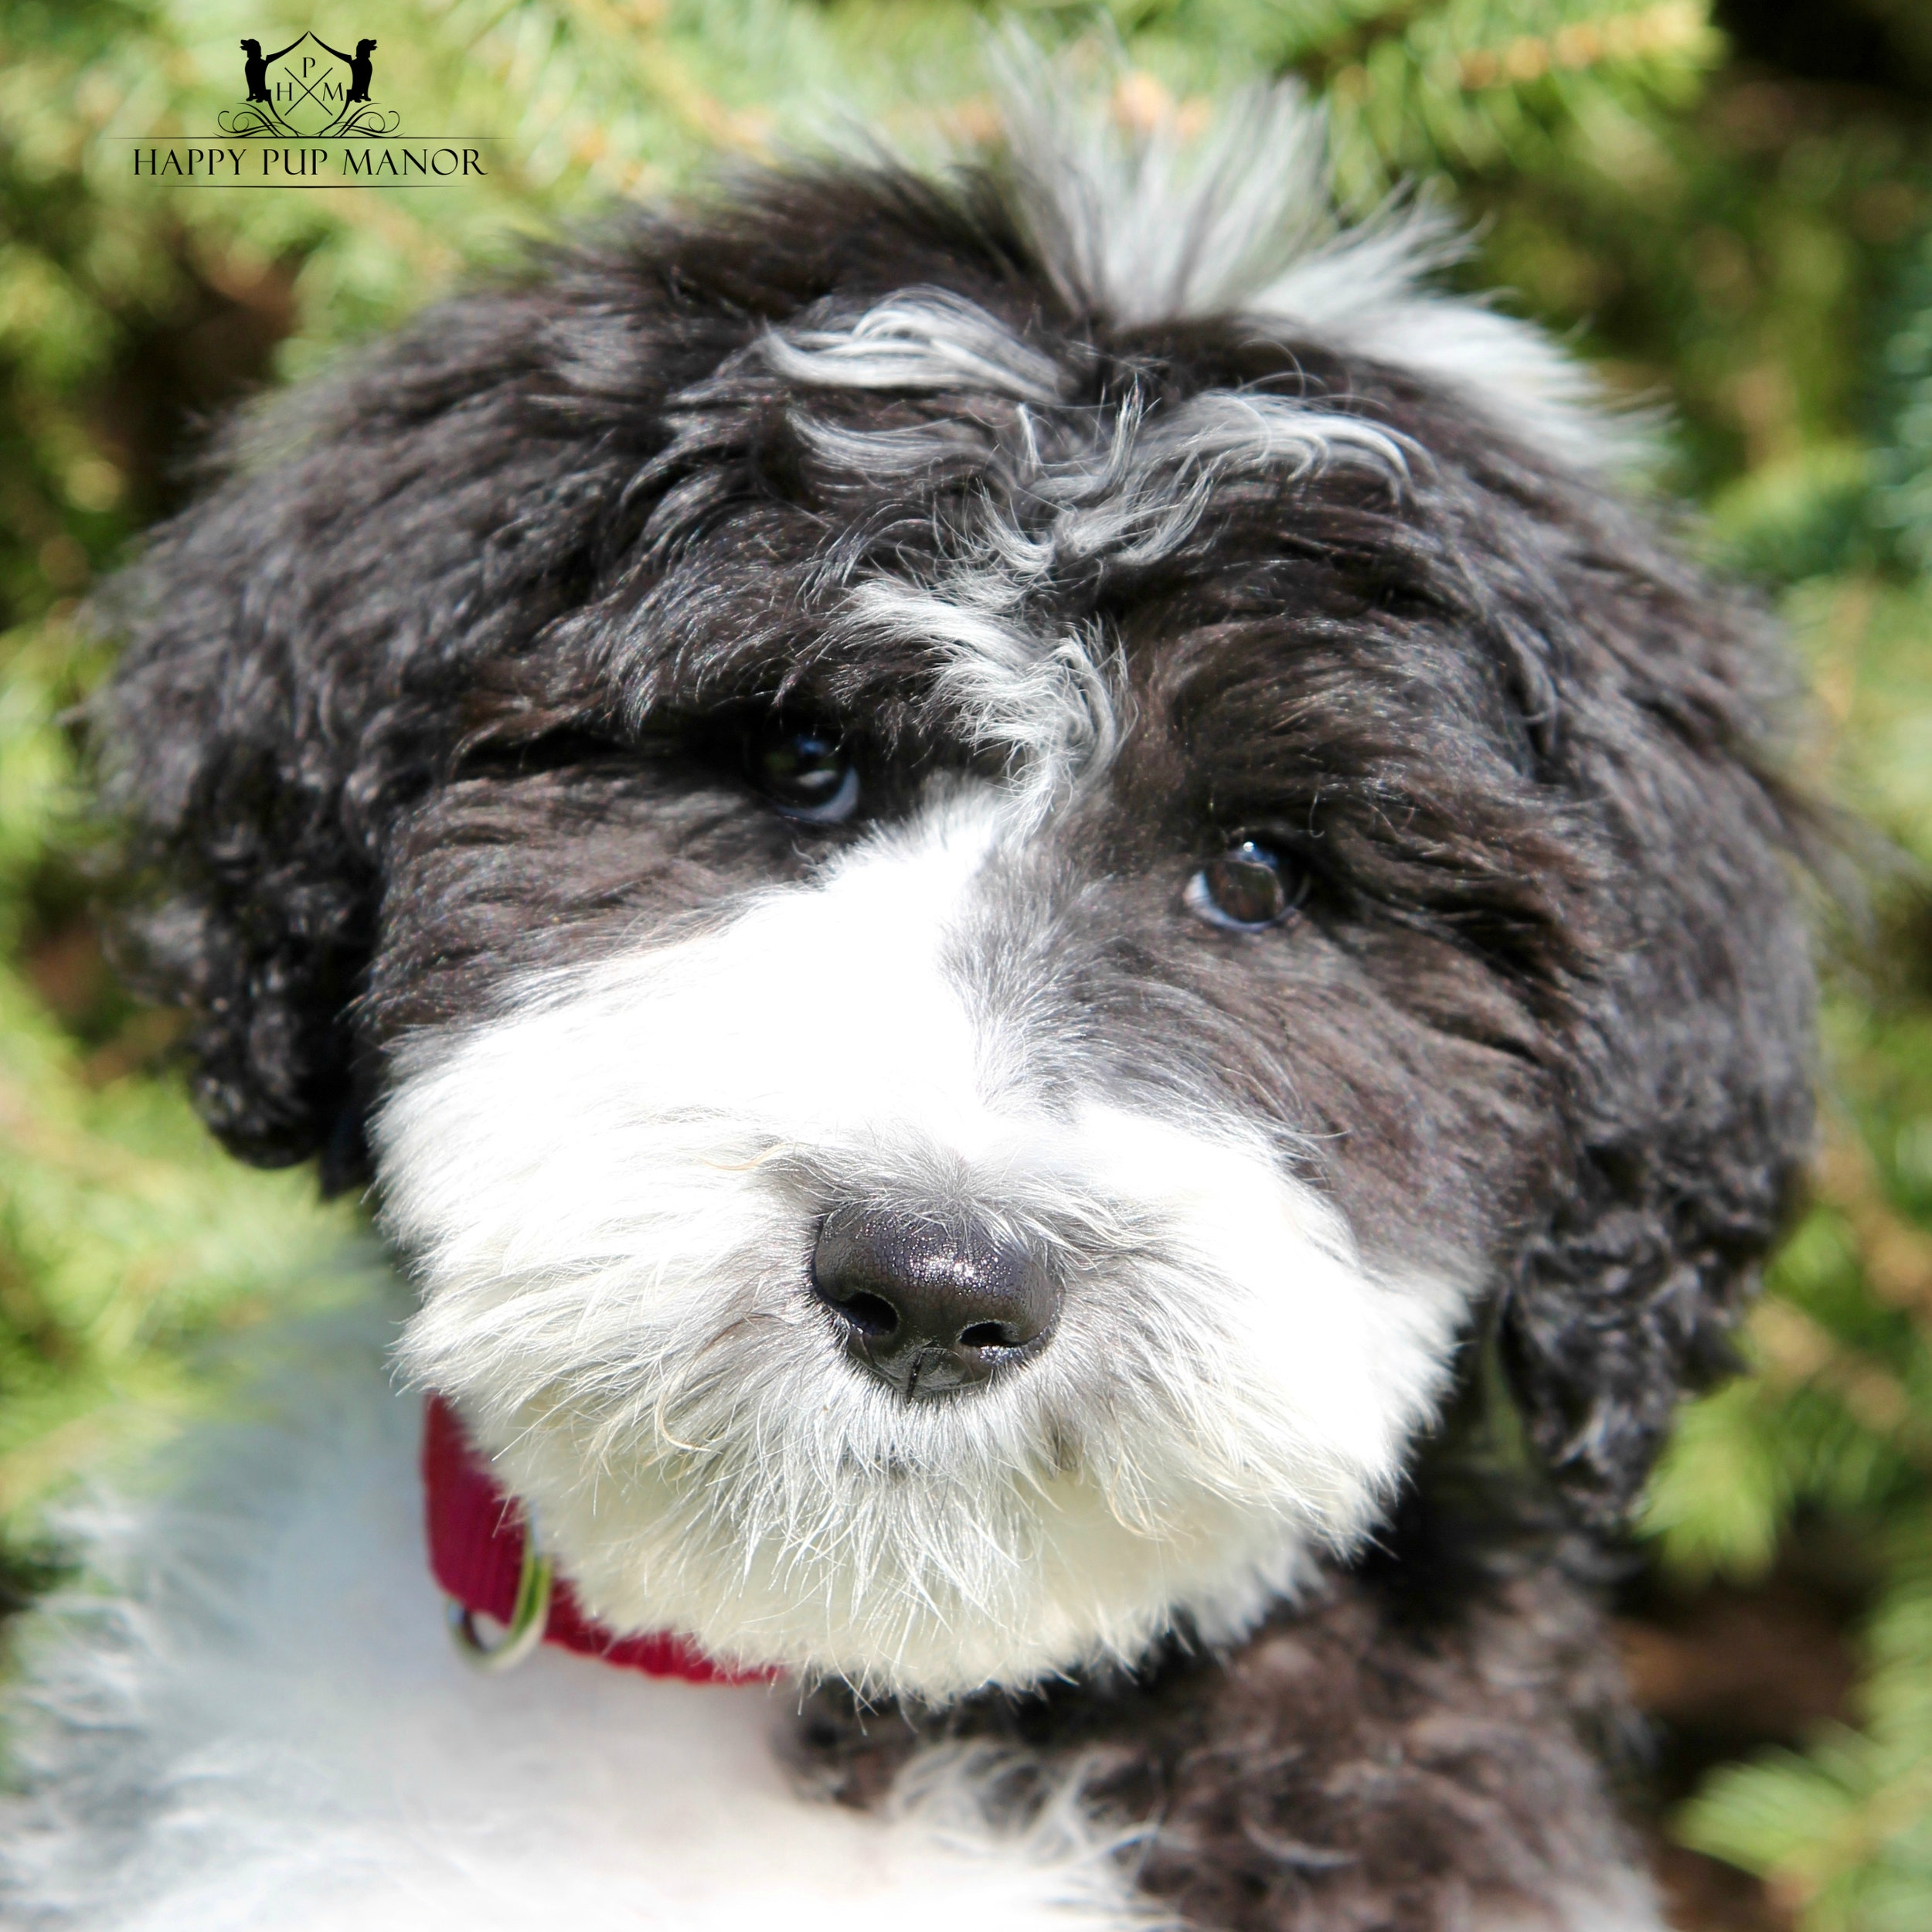 Ollie the Sheepadoodle